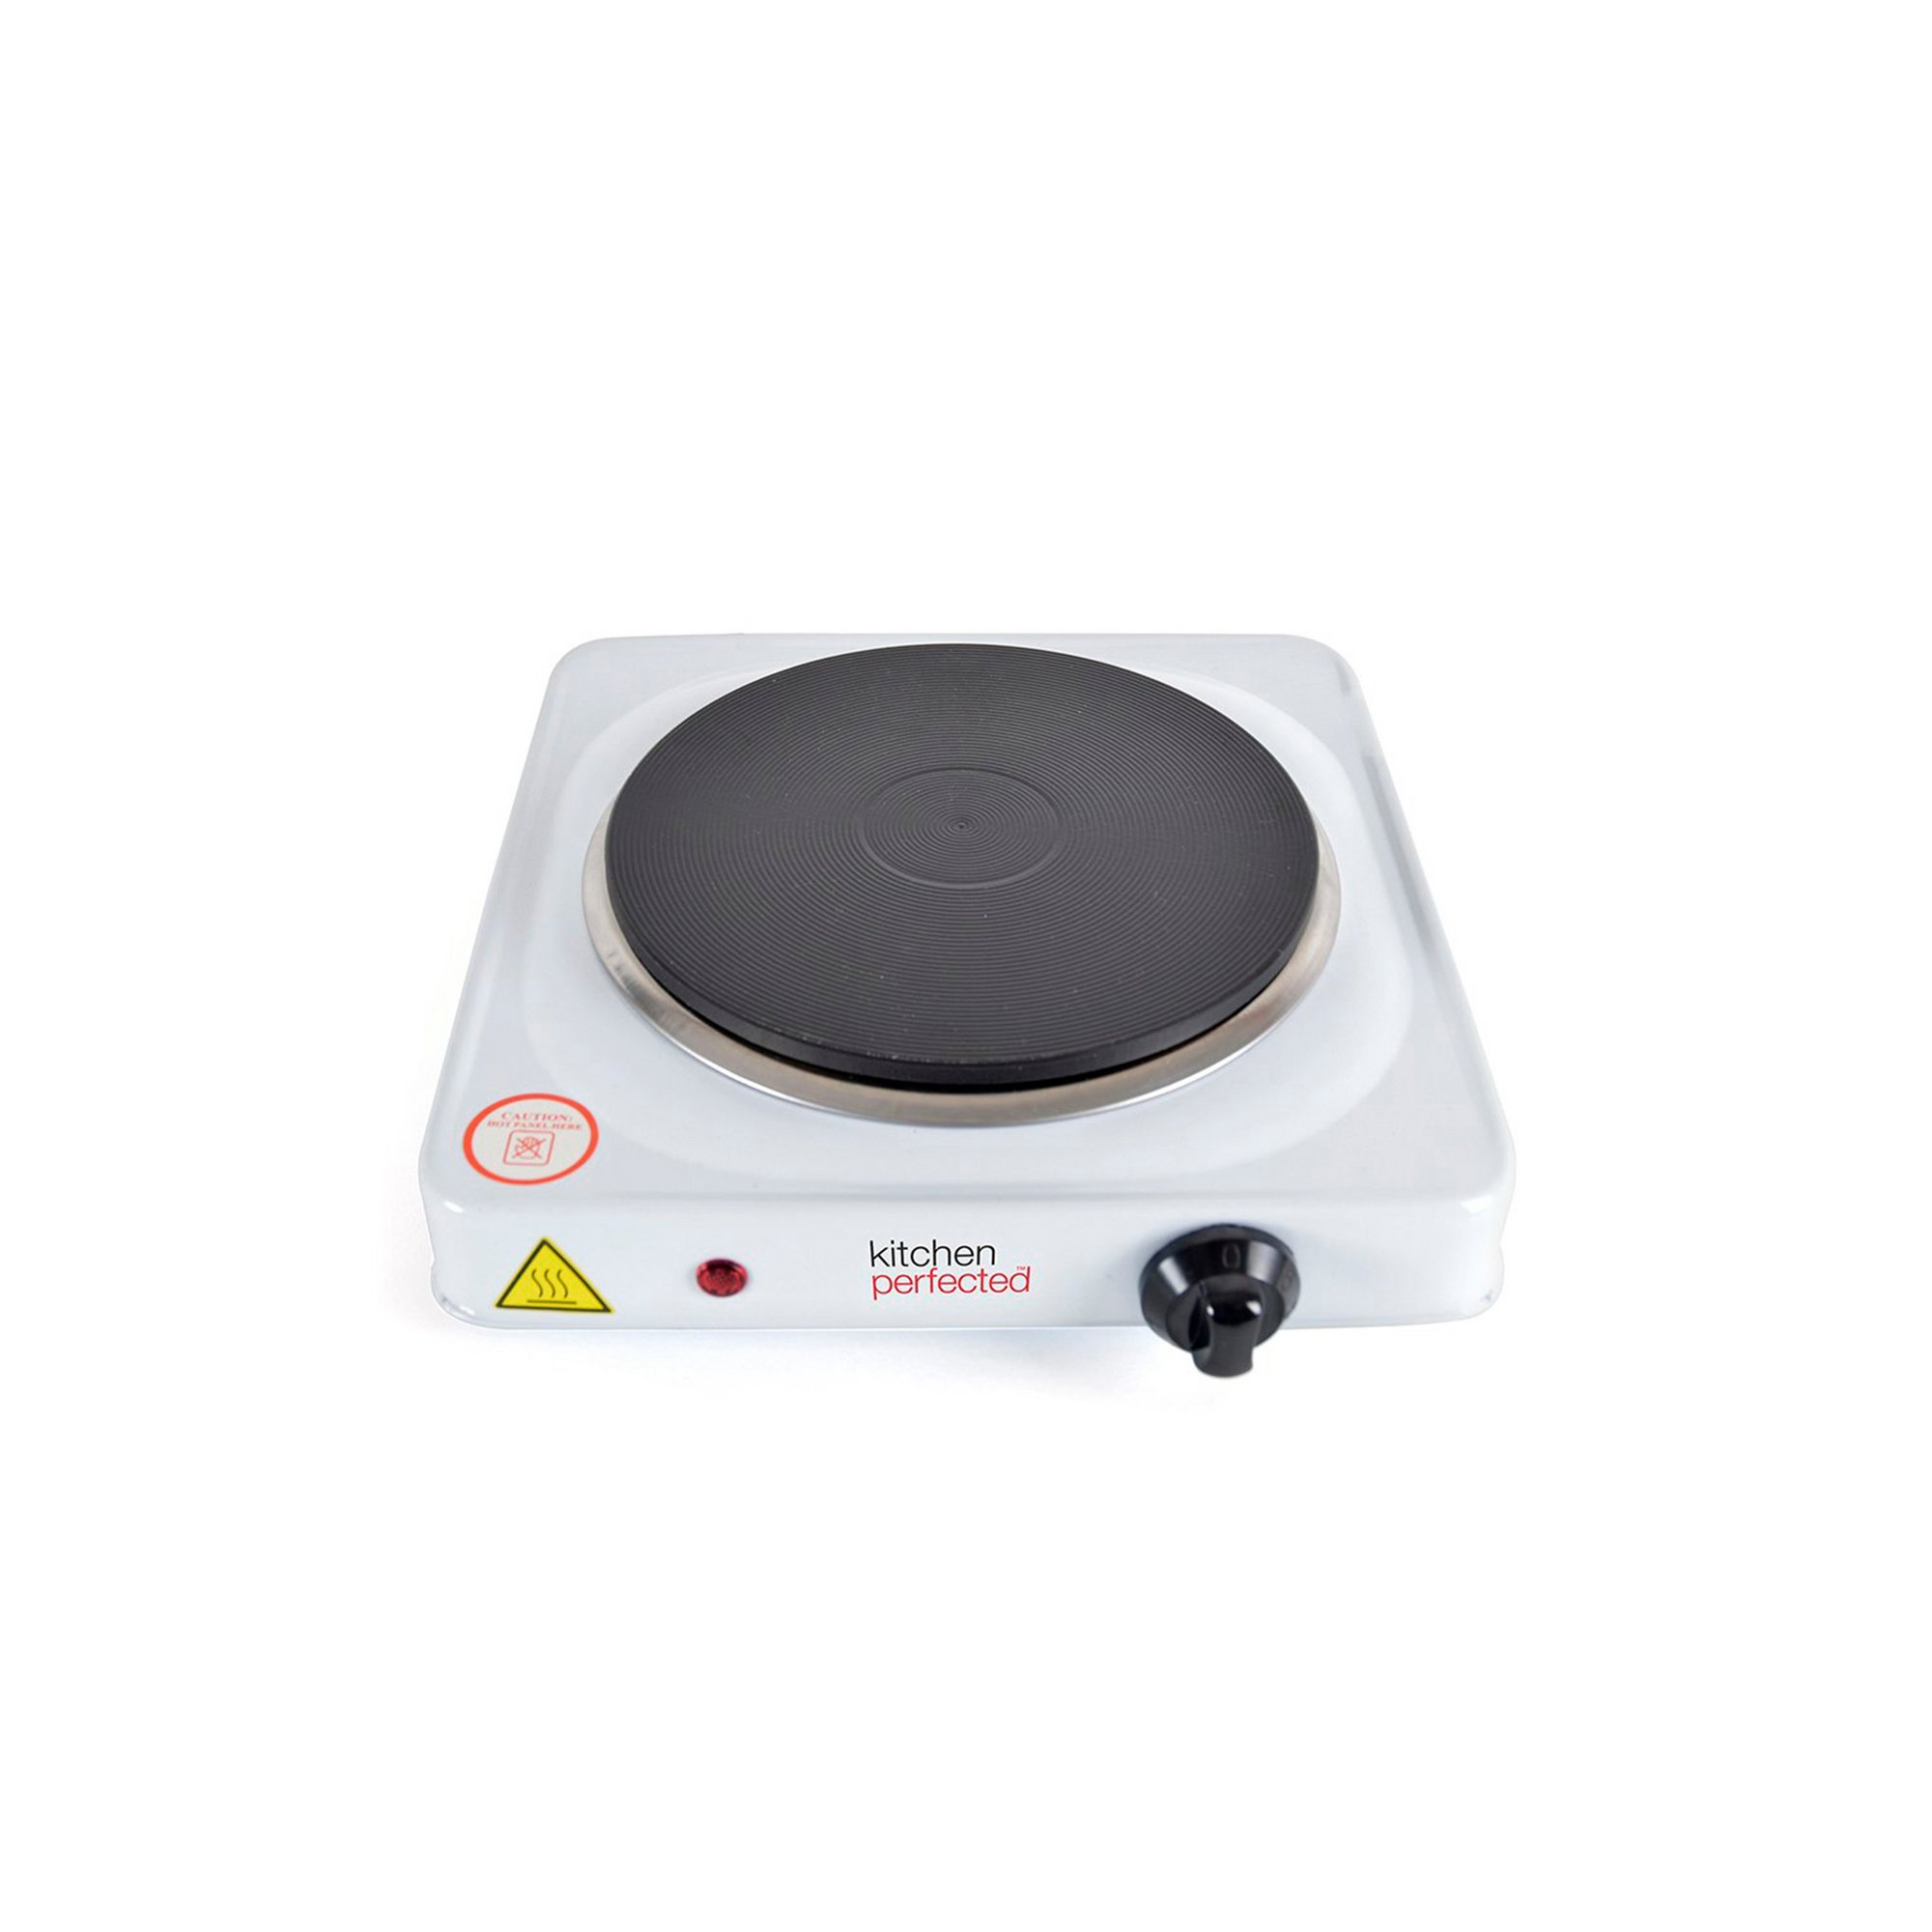 Image of Kitchen Perfected 1500w Single Hotplate